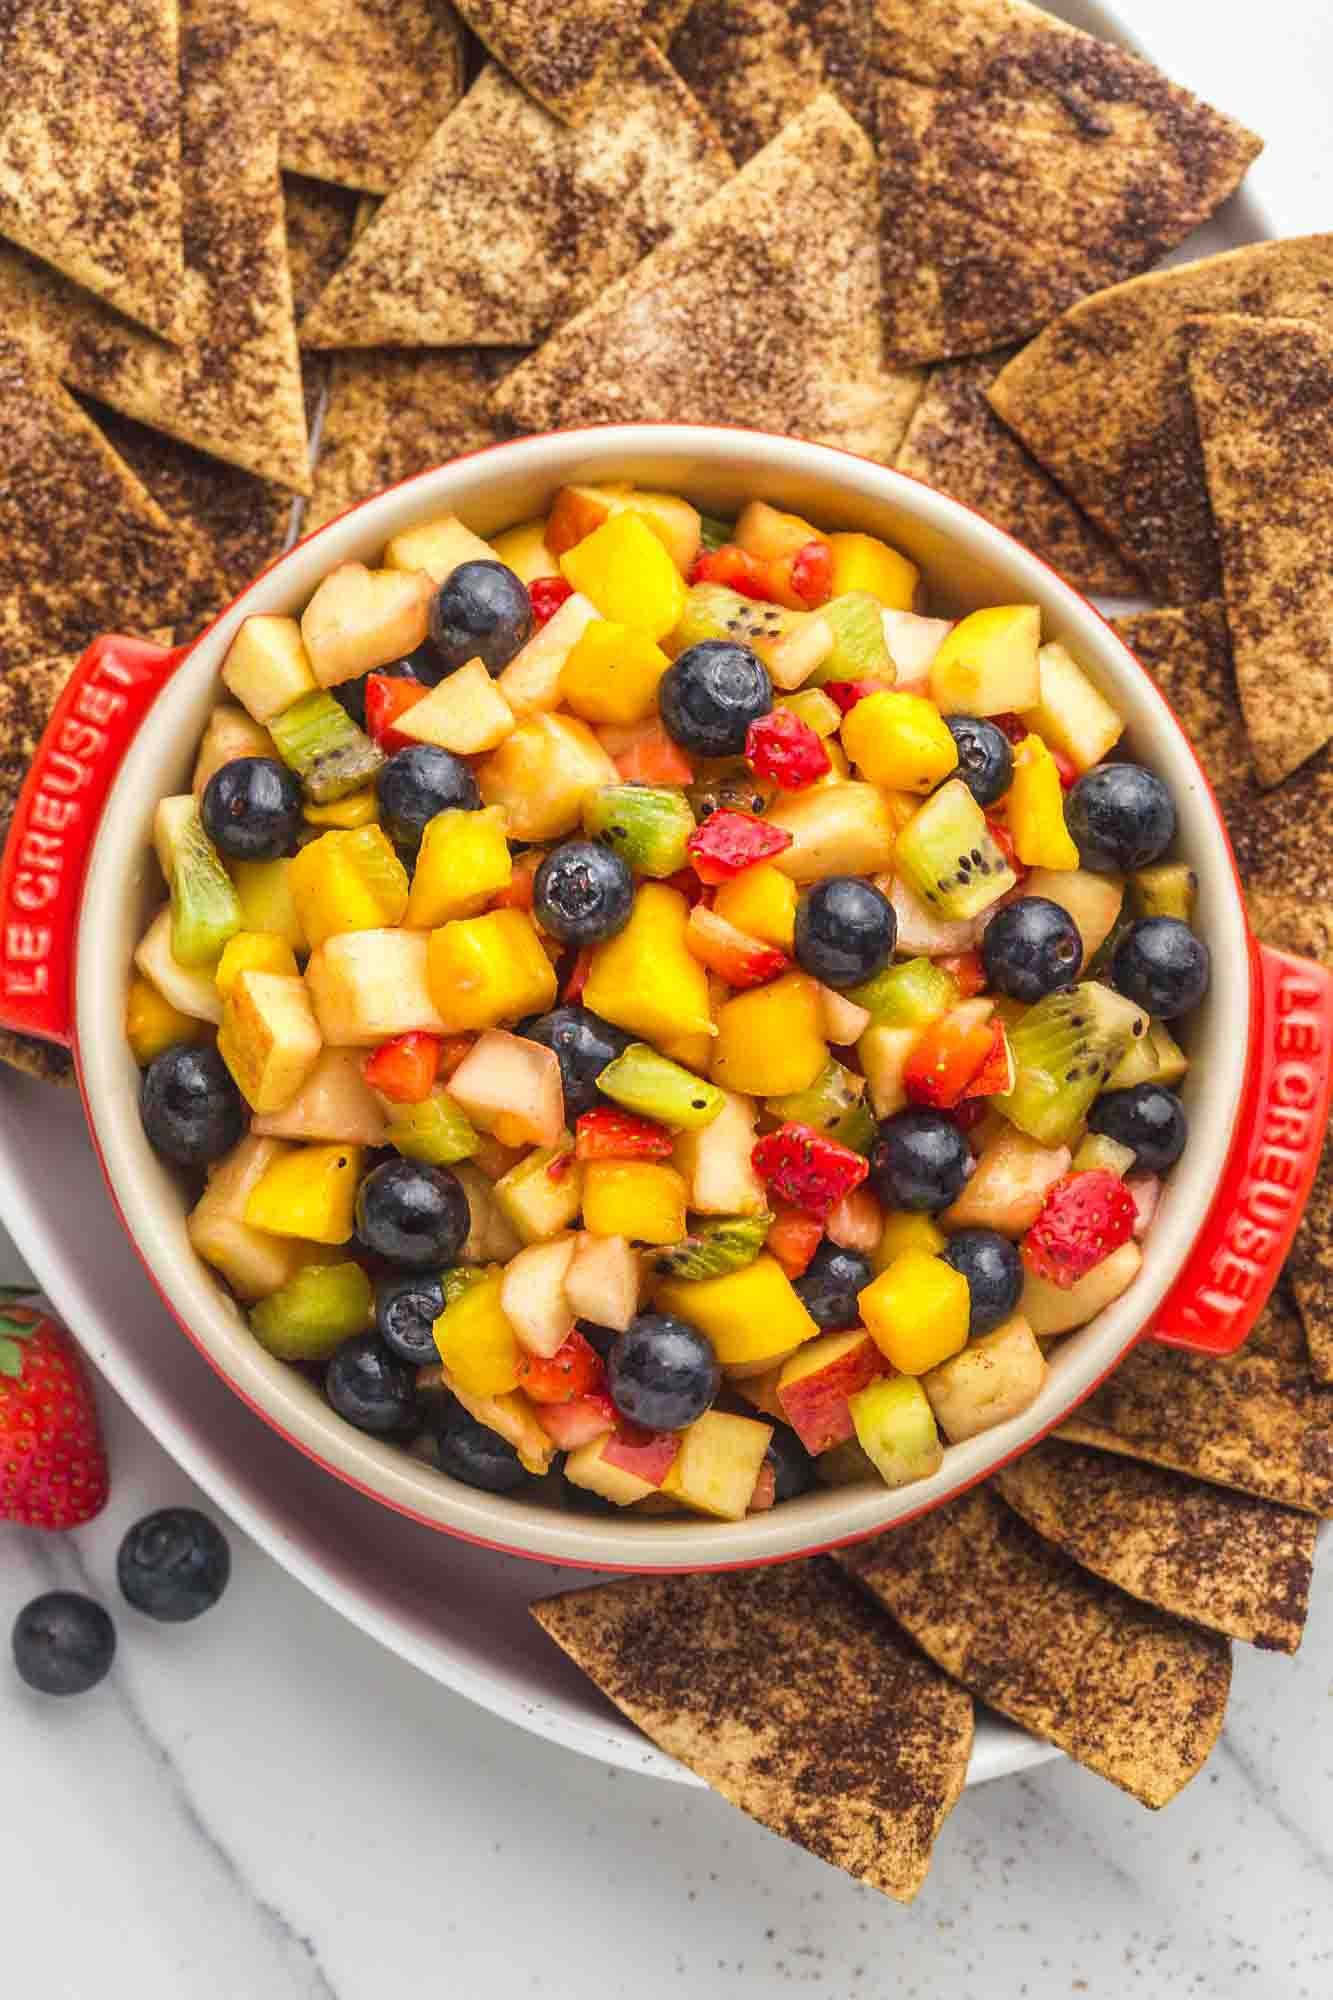 Fruit salsa served in a red Le Creuset dish, with crunchy cinnamon chips on the sides served in a large white platter.